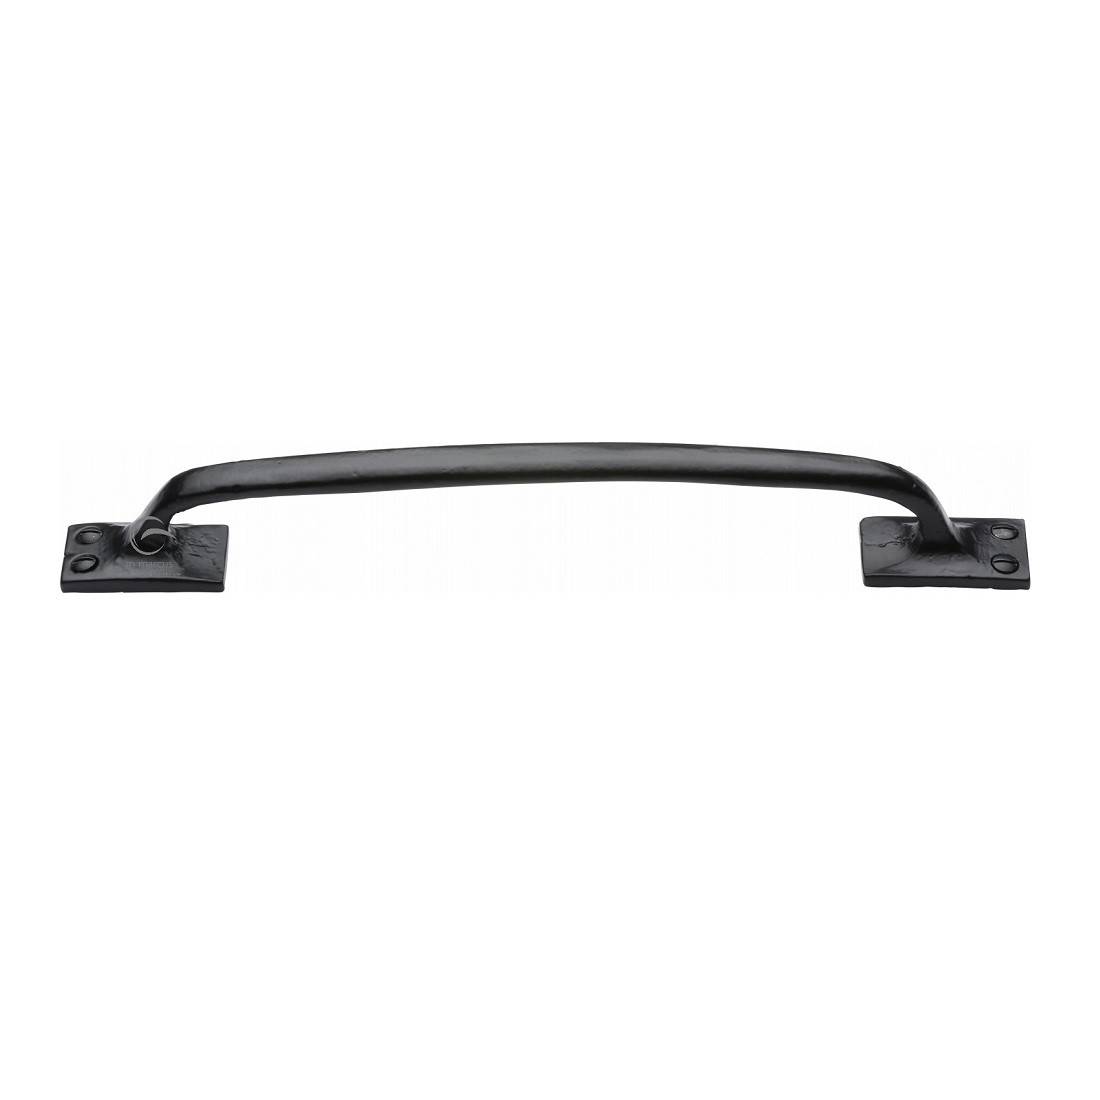 Mrcus Offset Cabinet Pull 260mm